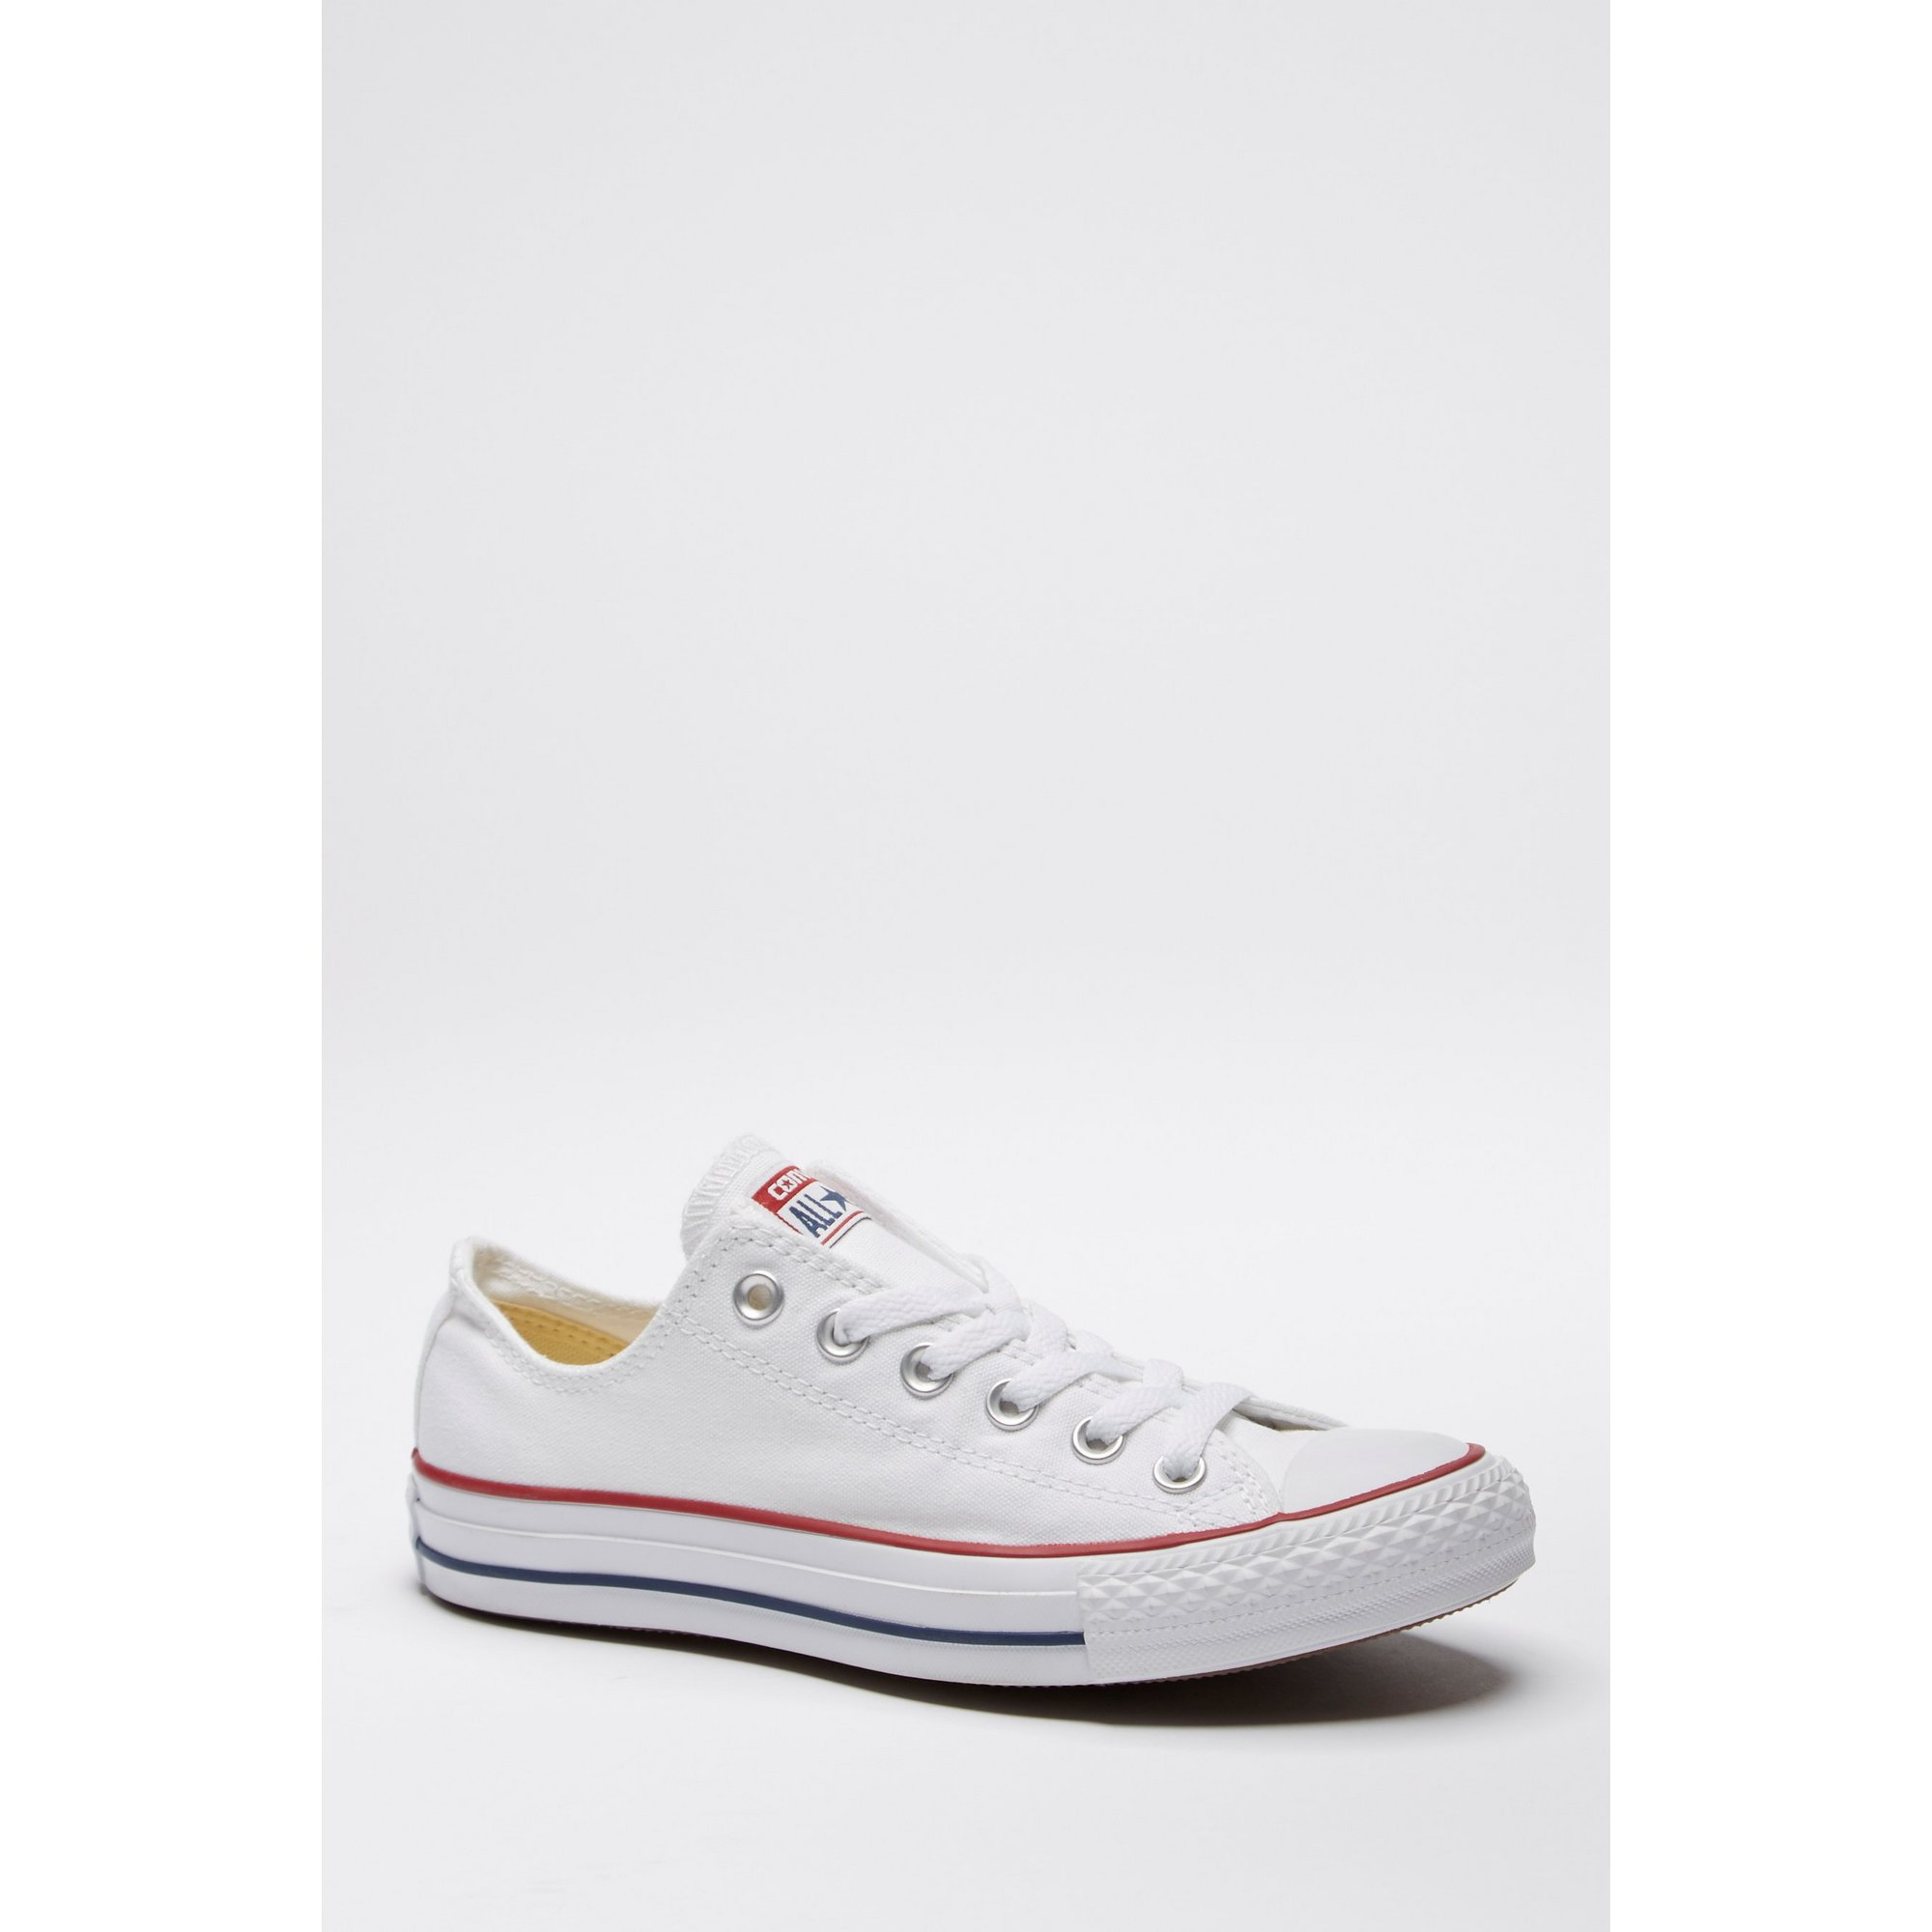 Image of Converse All Star Ox Low Trainers